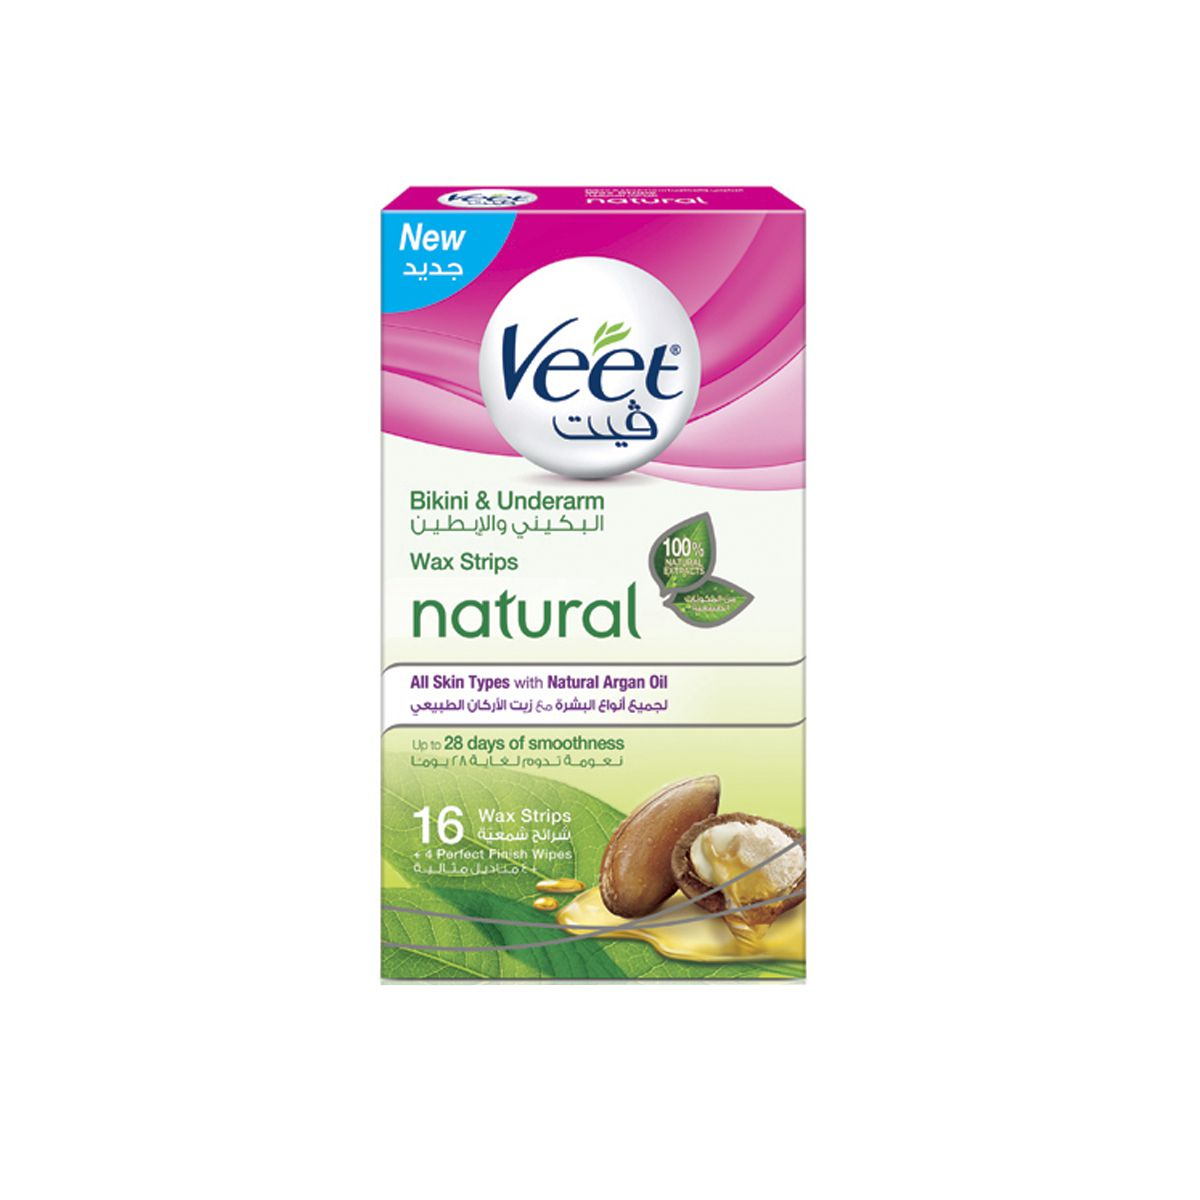 Veet Hair Remover Natural Bikini Under Arms Cold Wax Strips